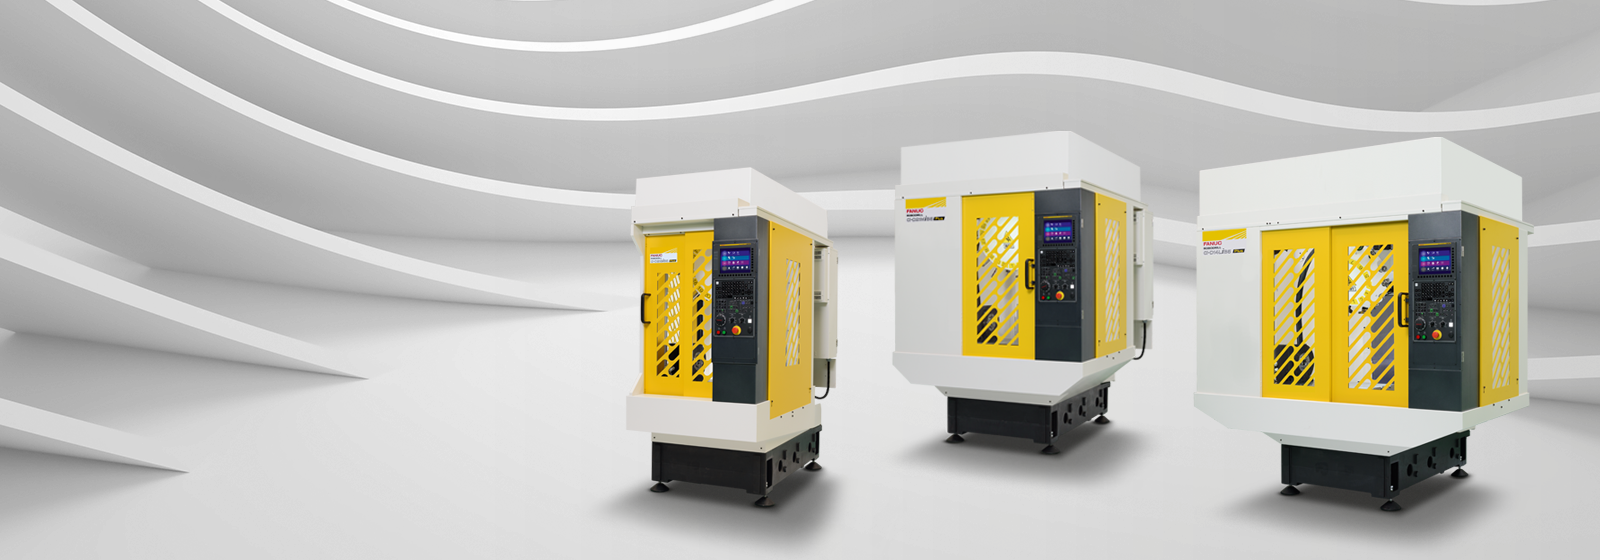 FANUC ROBODRILL vertical machining centres series